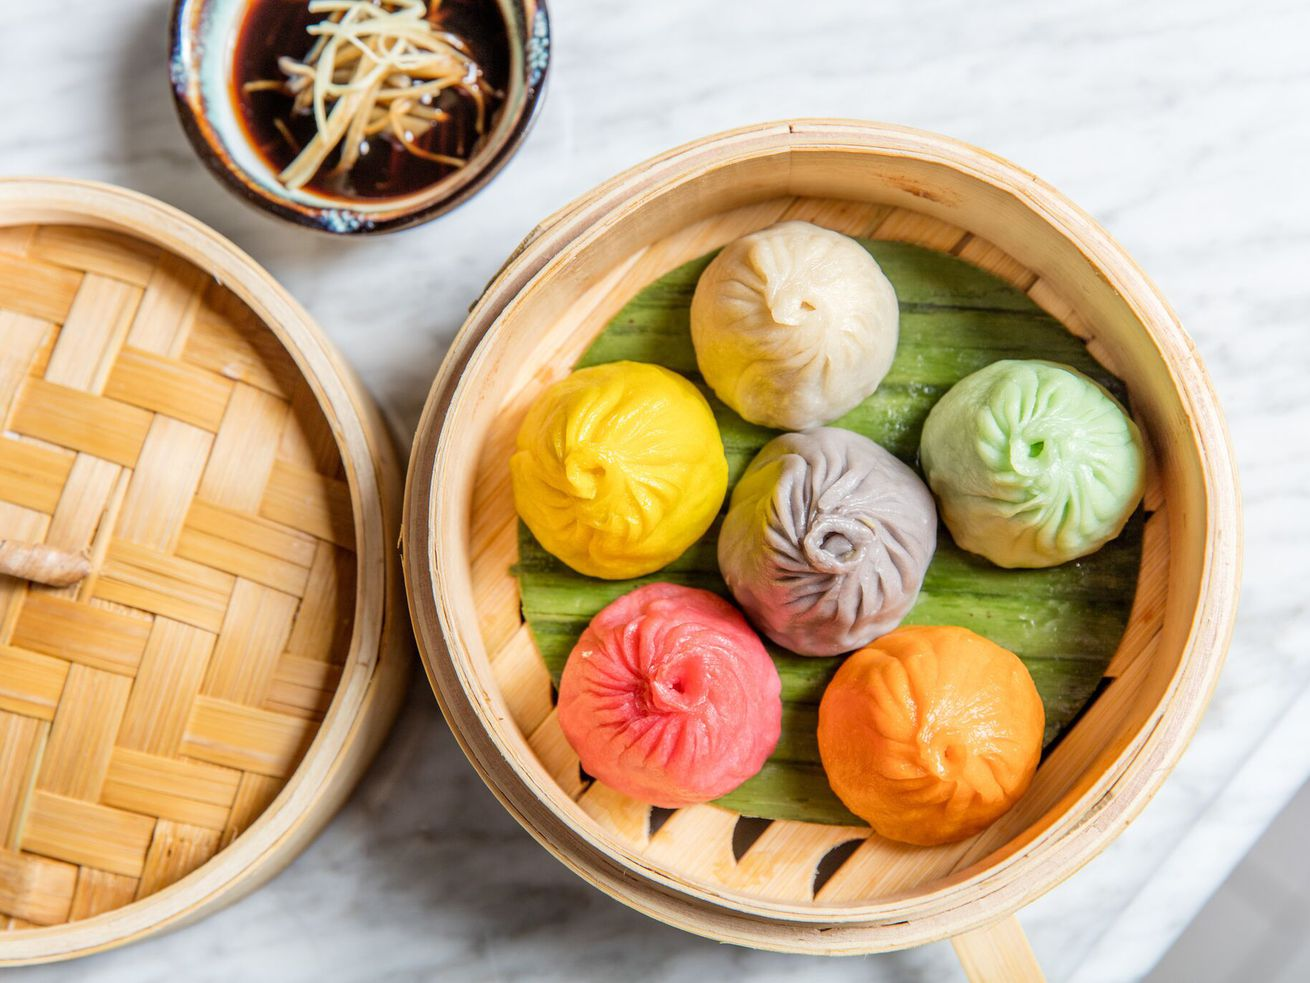 Want to Make Your Own Dumplings? These Tools Could Make Things Easier